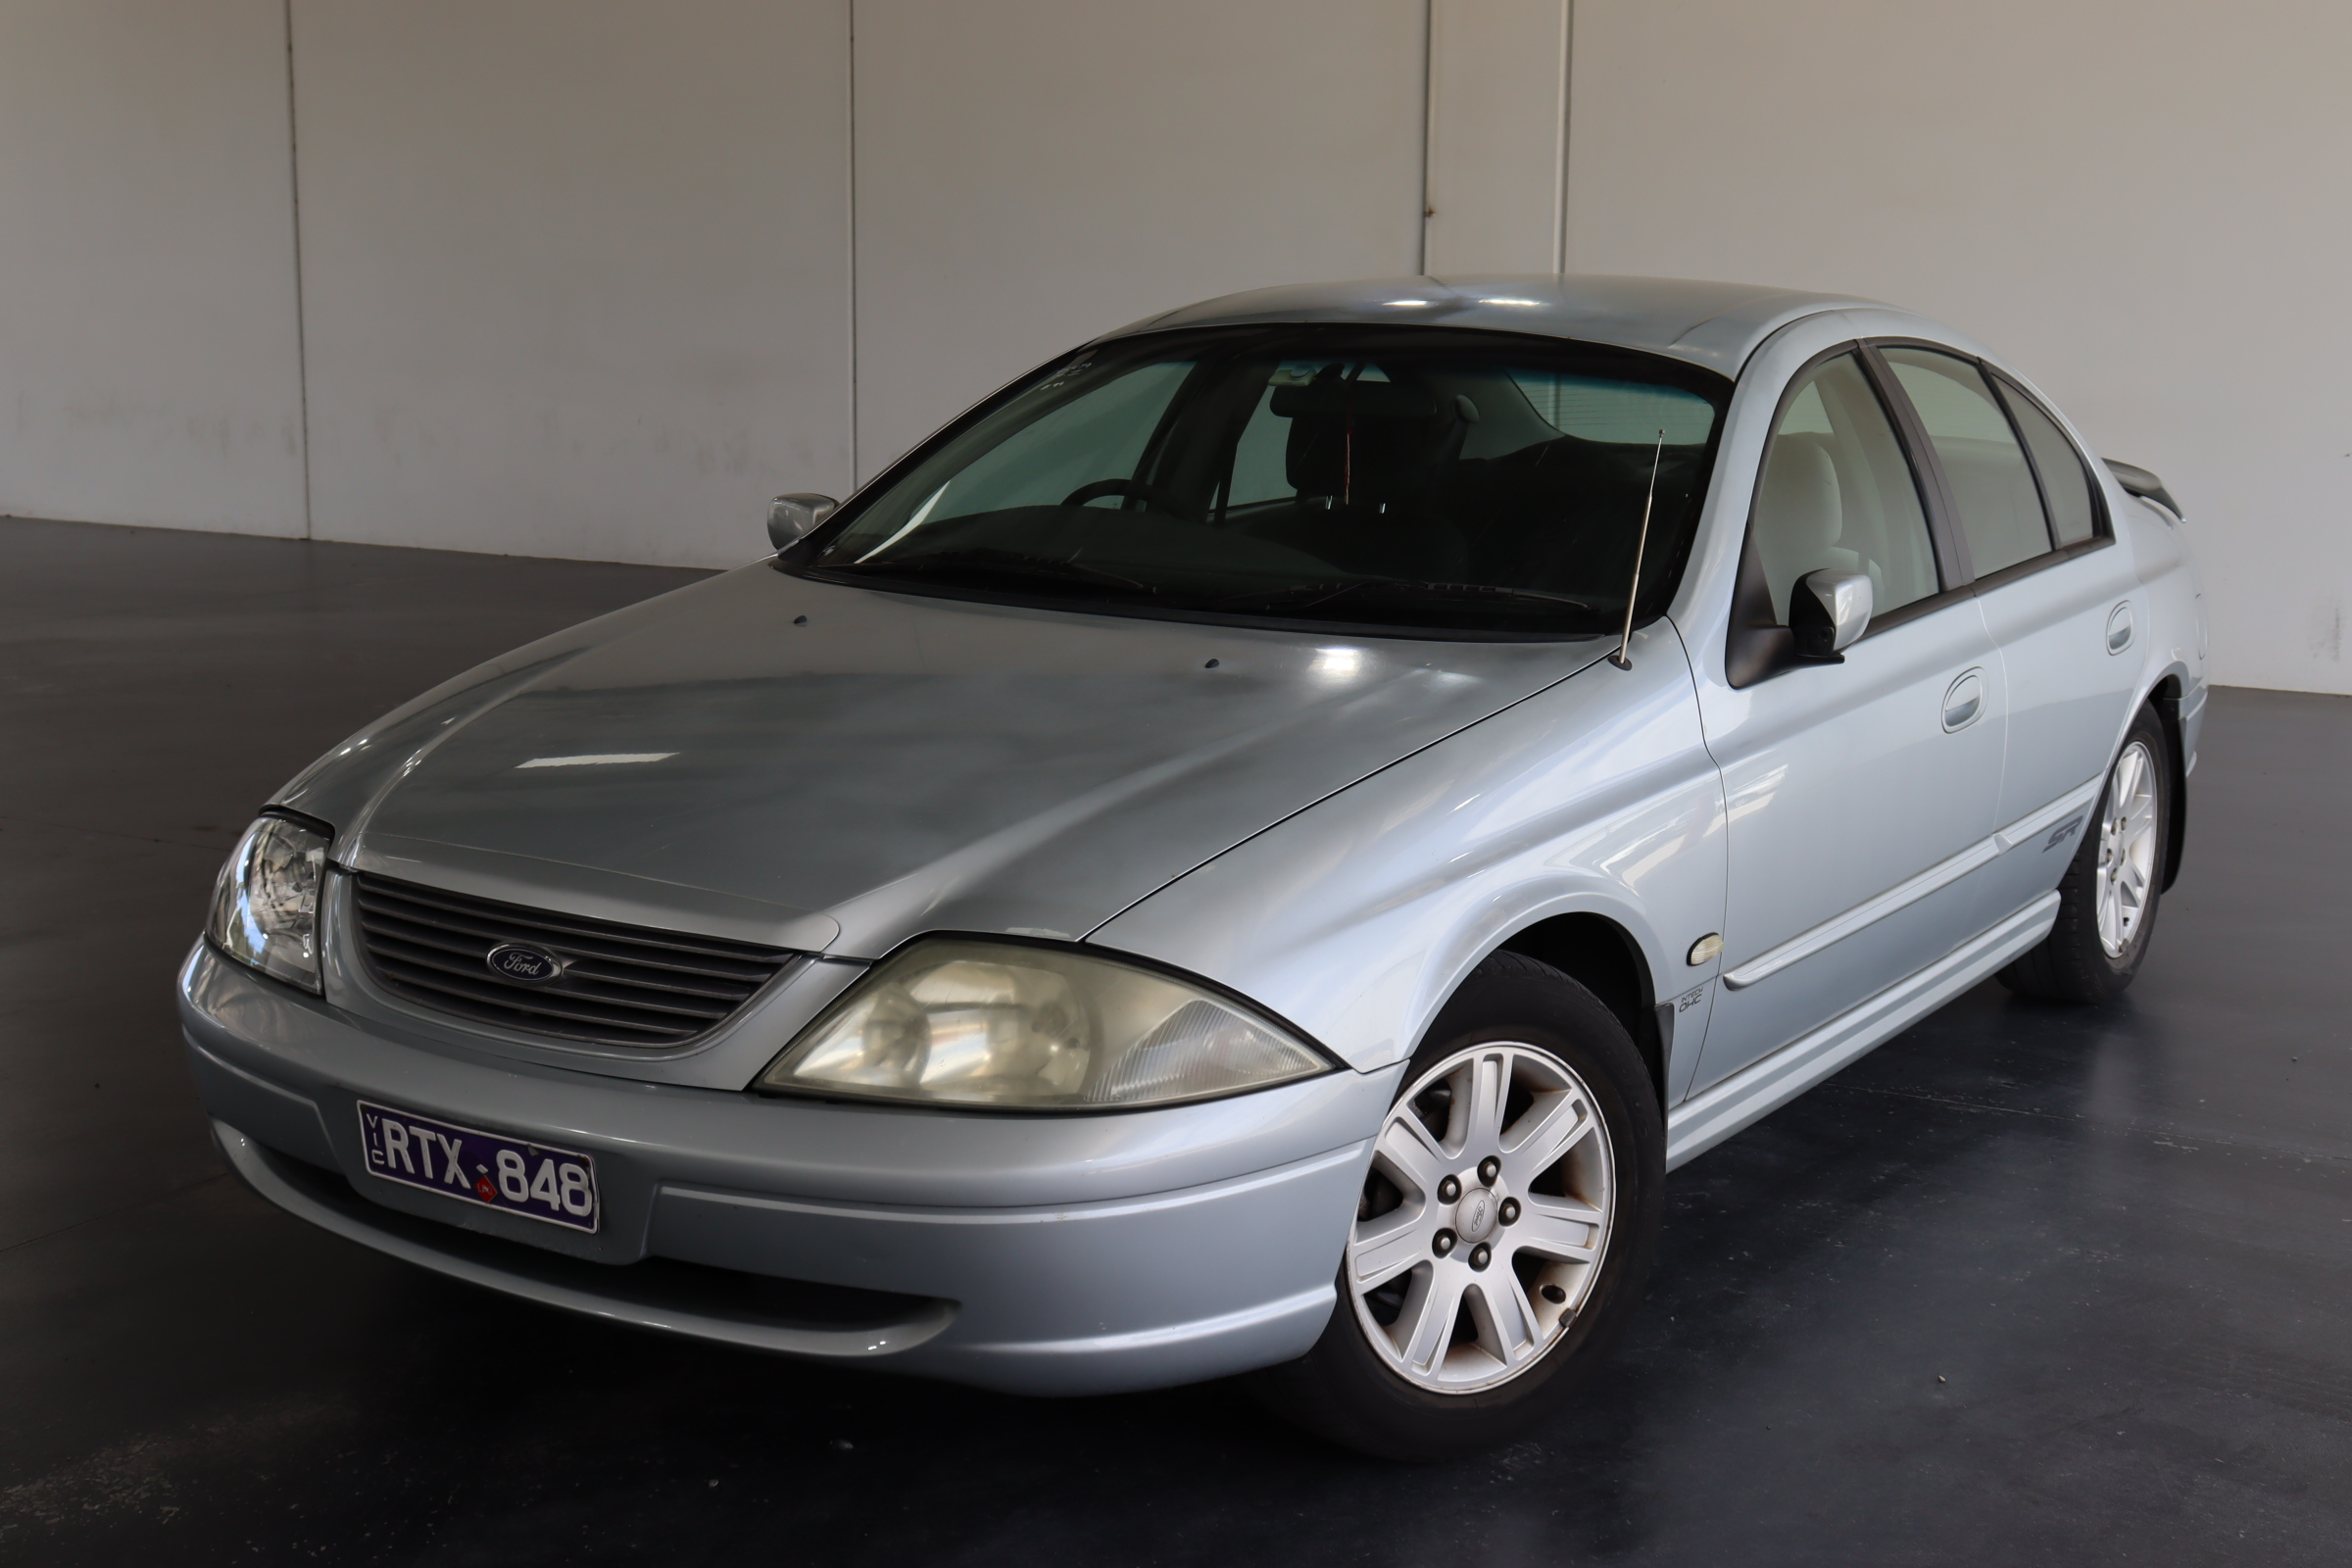 2002 Ford Falcon Forte AUIII Automatic Sedan